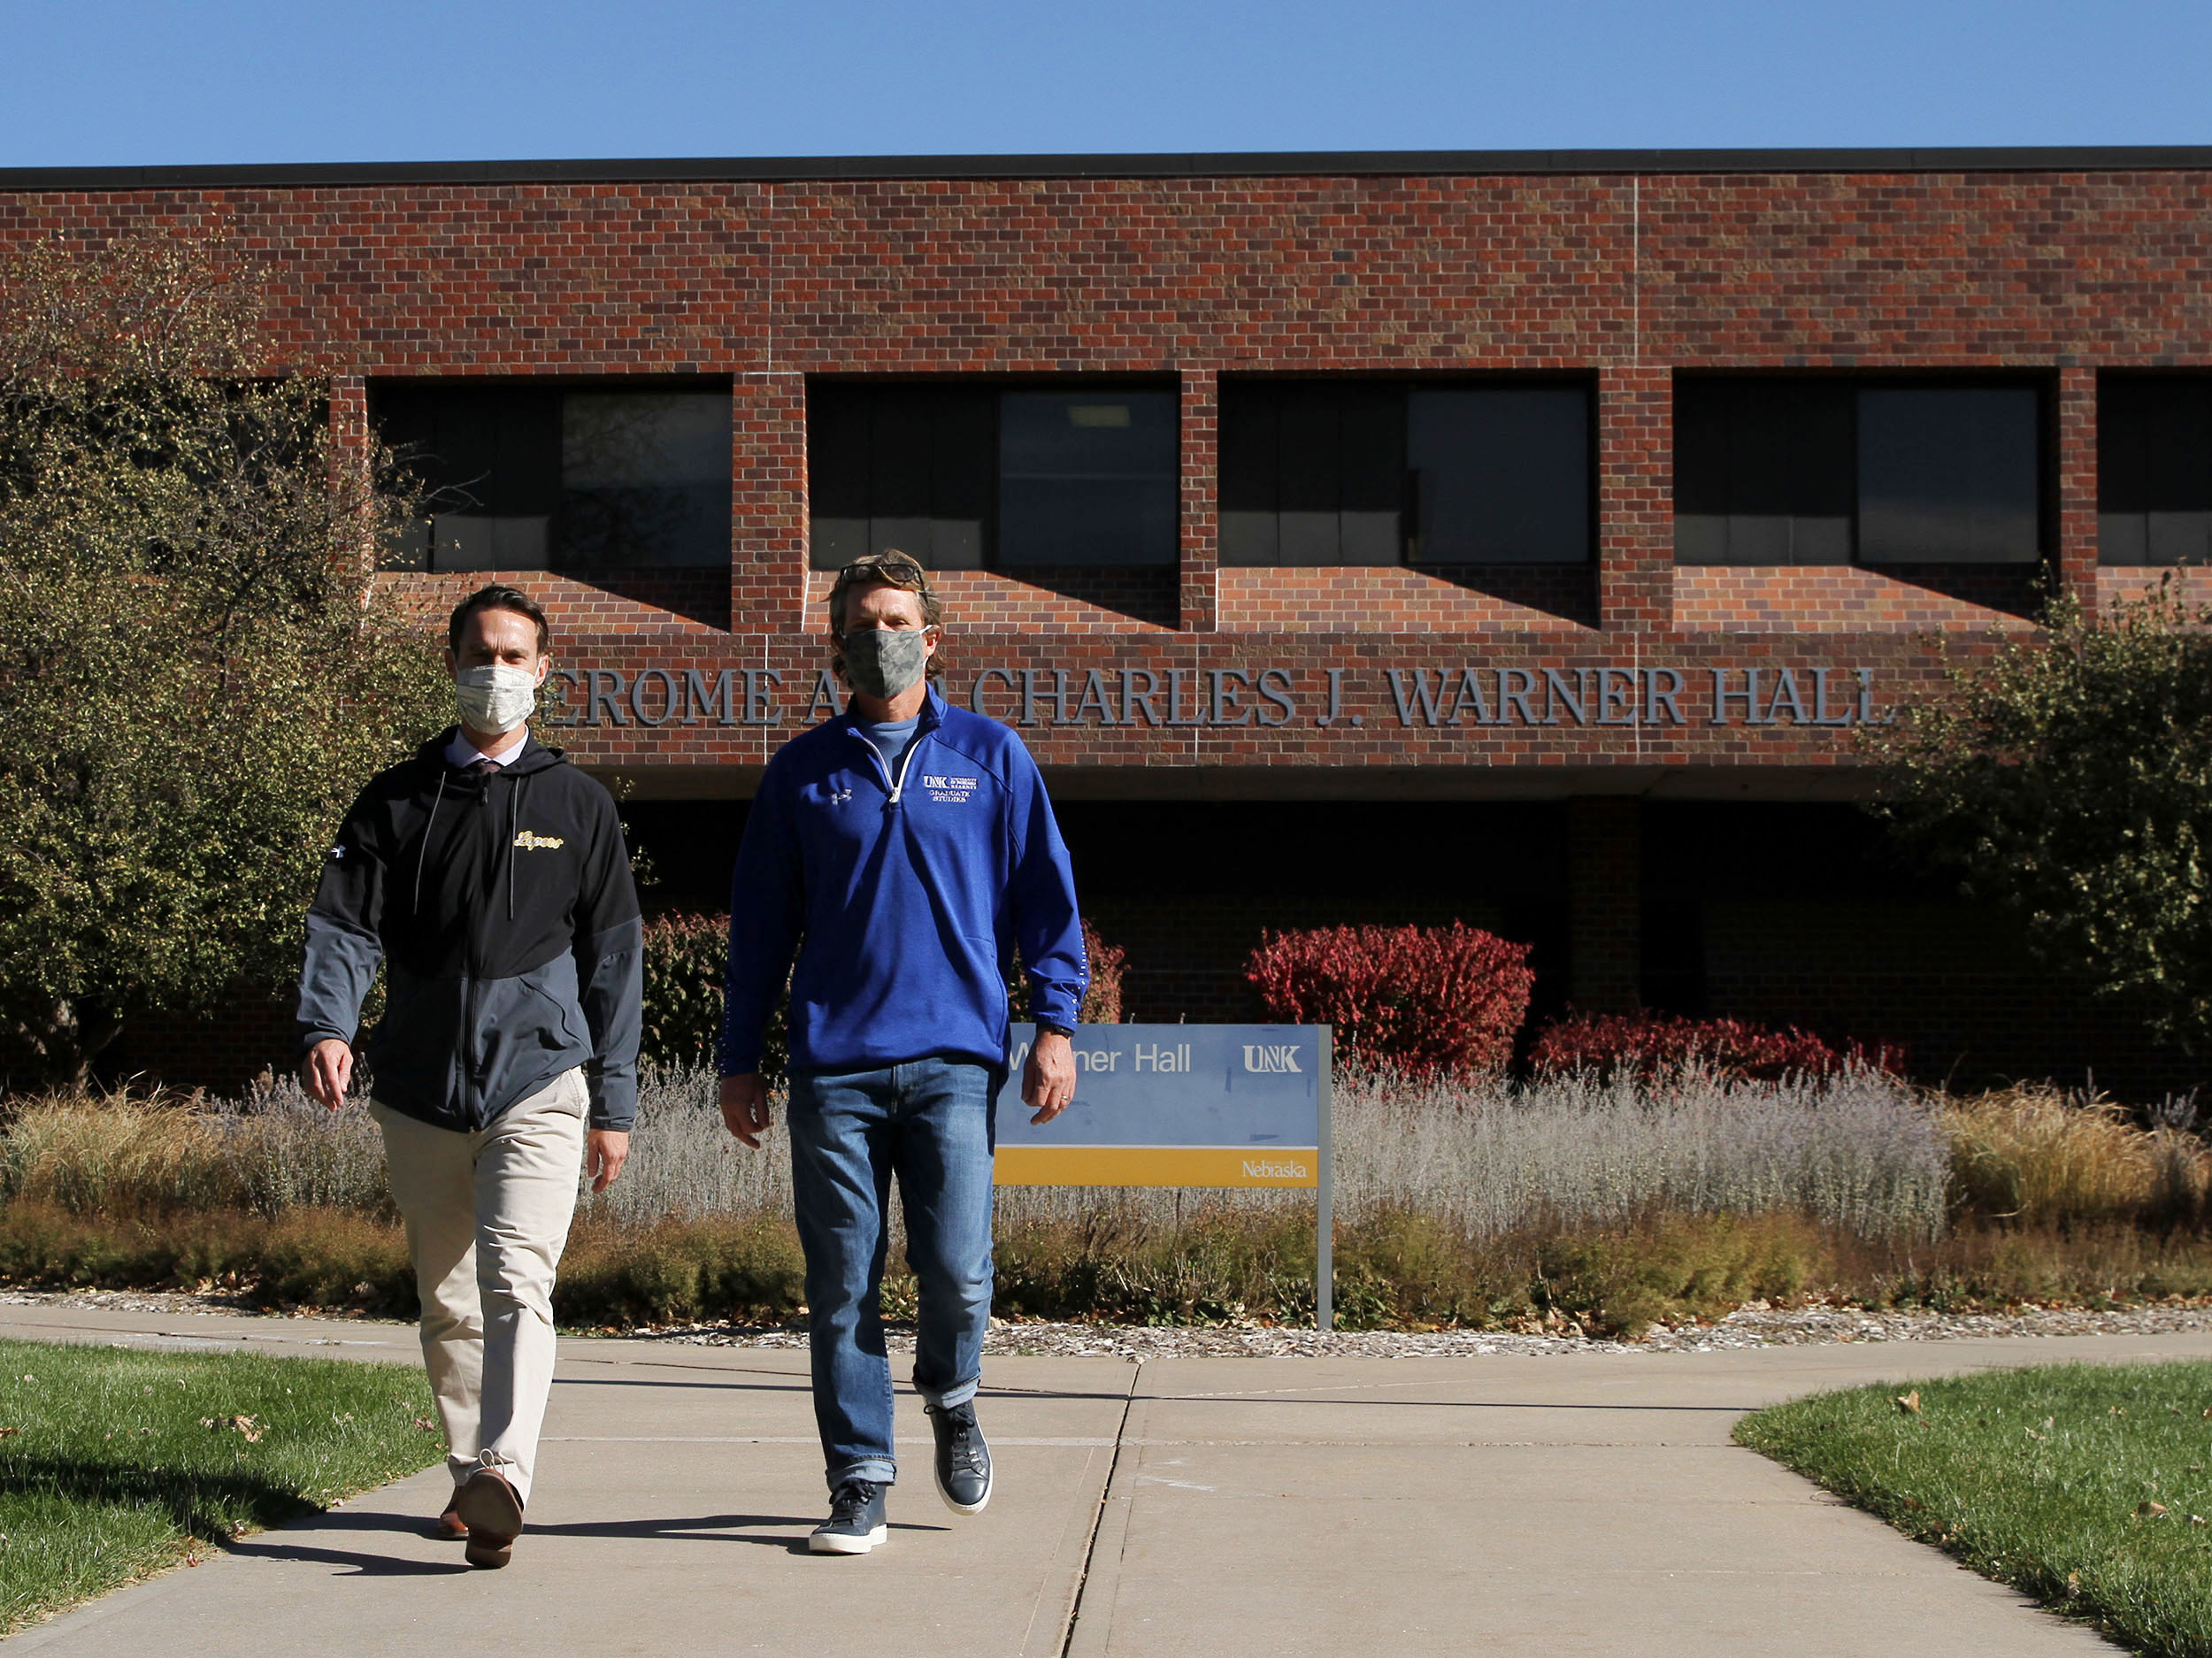 """Matt Bice, left, associate dean of graduate studies and director of undergraduate research and creative activity, and Mark Ellis, dean of graduate studies, regularly organize """"walk-and-talk"""" meetings on the UNK campus. They average more than 10,000 steps per day."""